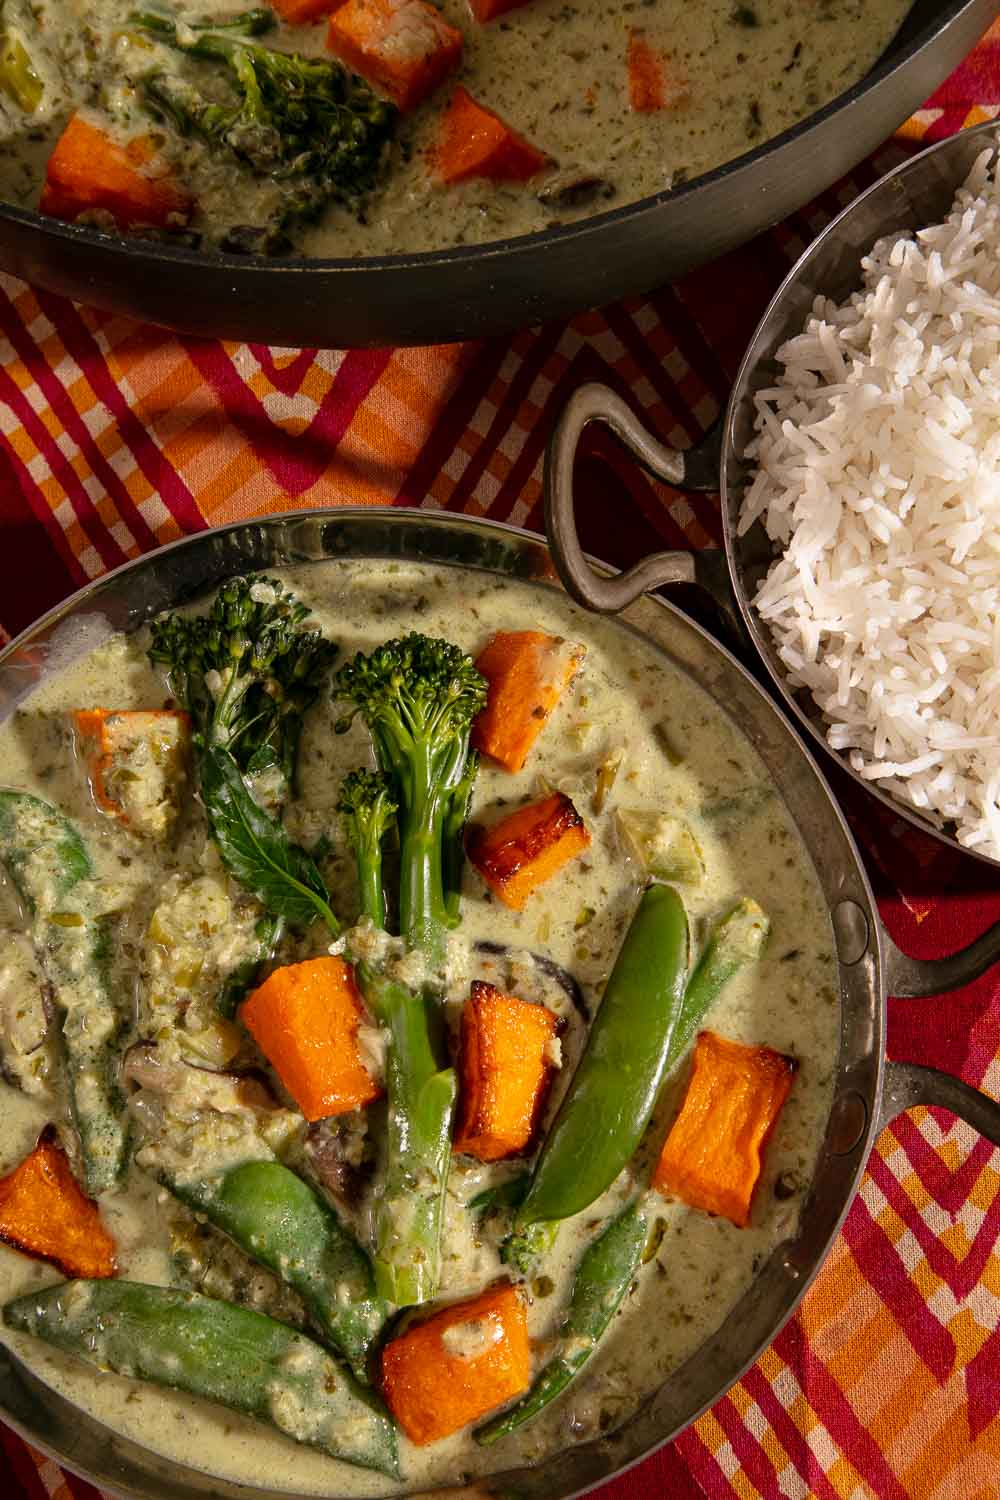 Vegan Thai Green Curry served with rice.